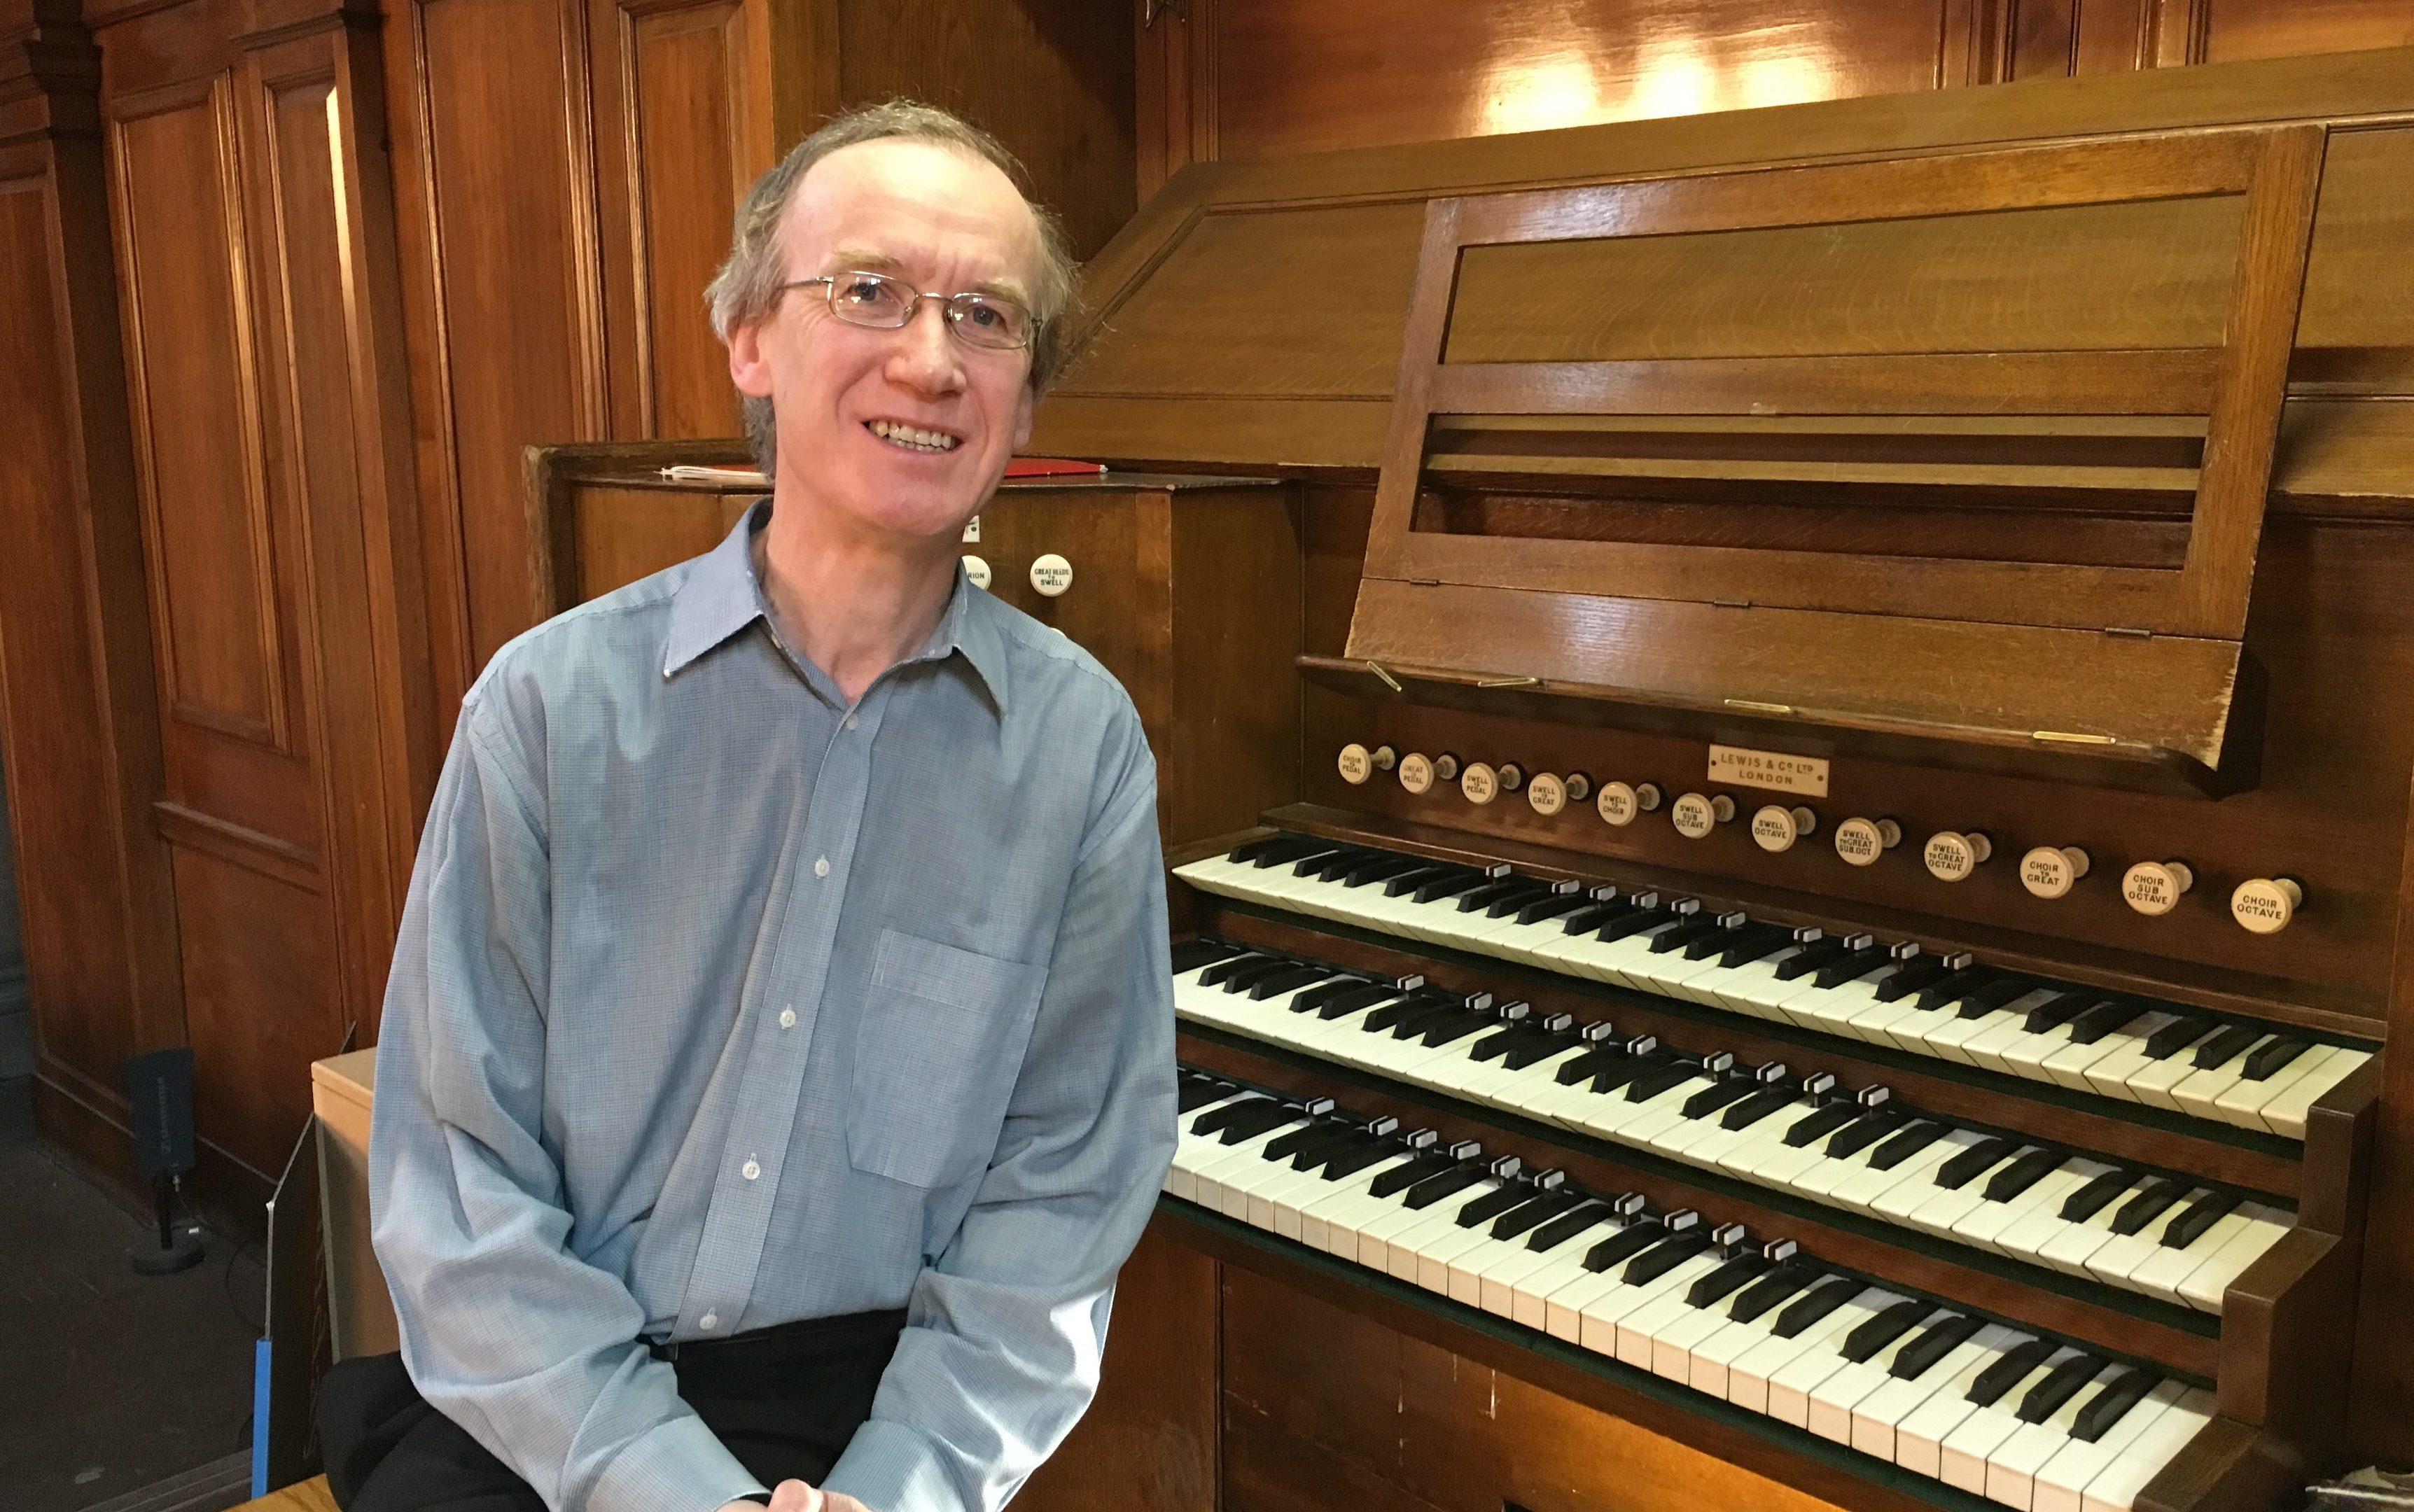 Chris Nickol, one of Kelvingrove's organists (Ross Crae / DC Thomson)